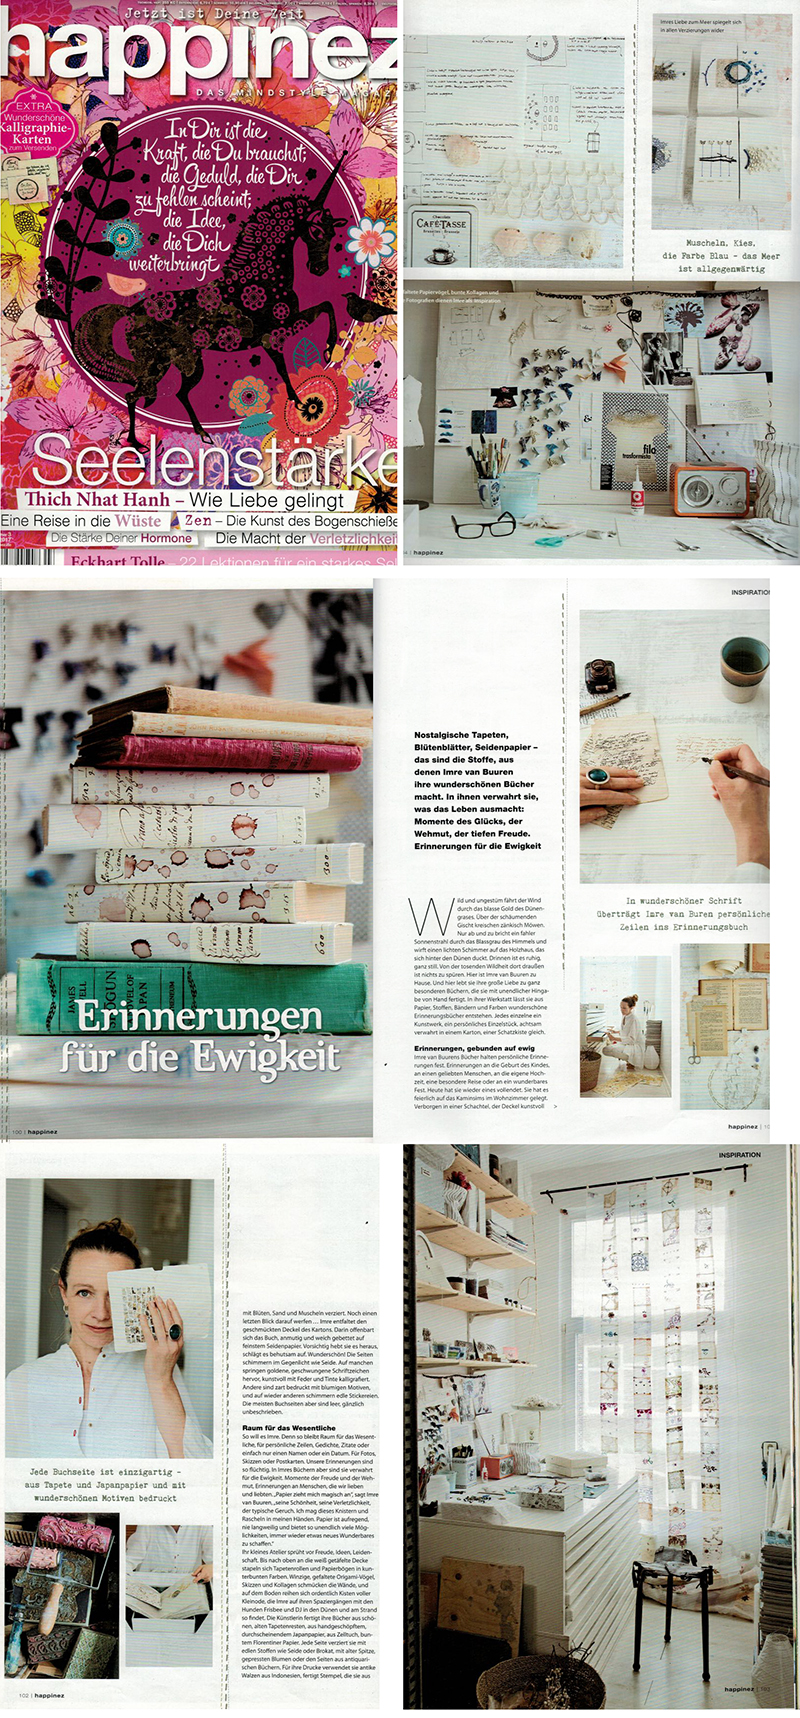 Article in German Happinez, March 2017